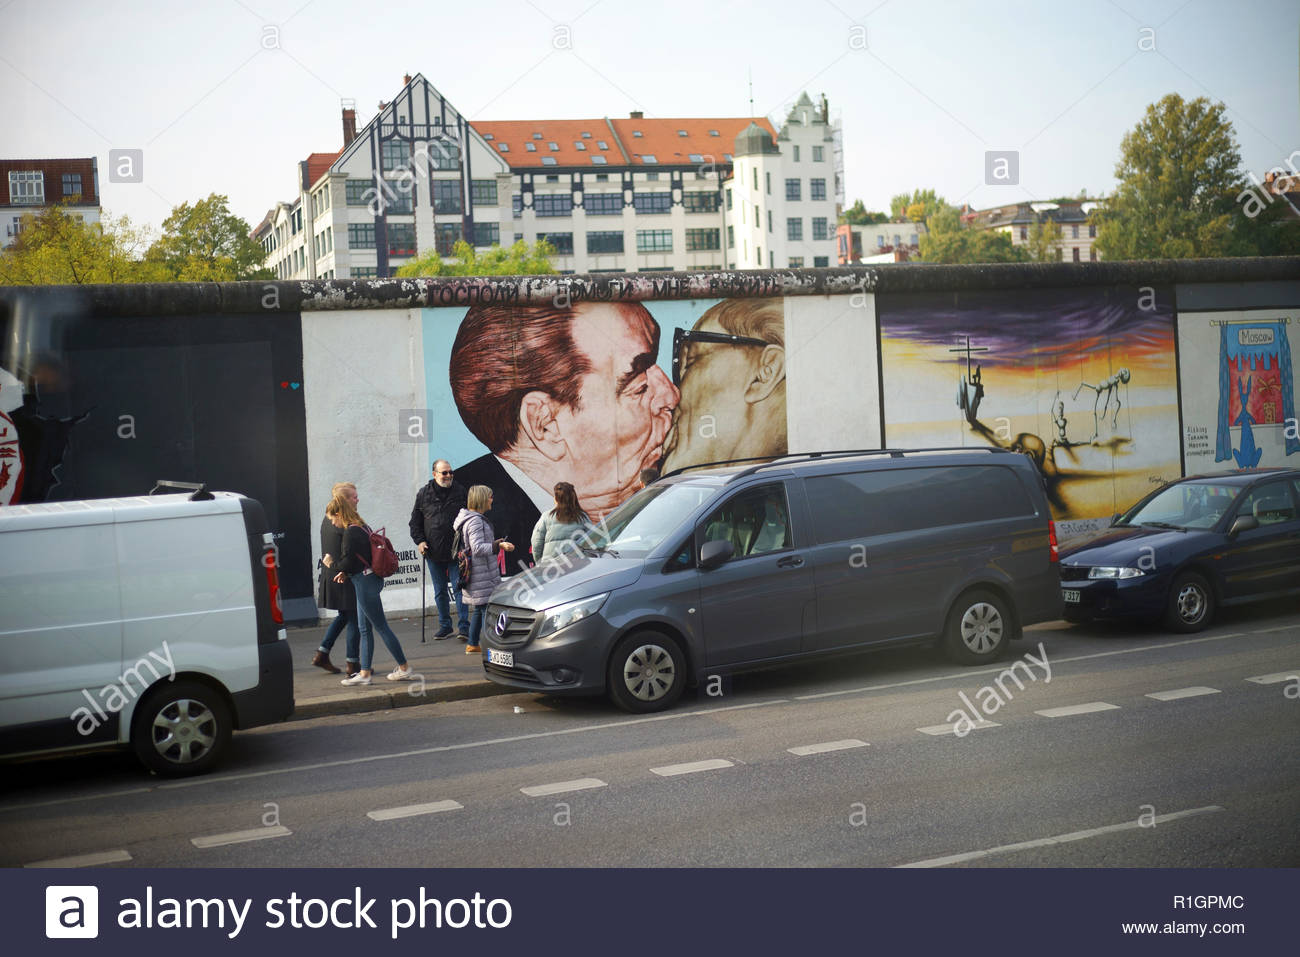 Murals painted on the Berlin Wall, now the East Side Gallery in Berlin, Germany. - Stock Image